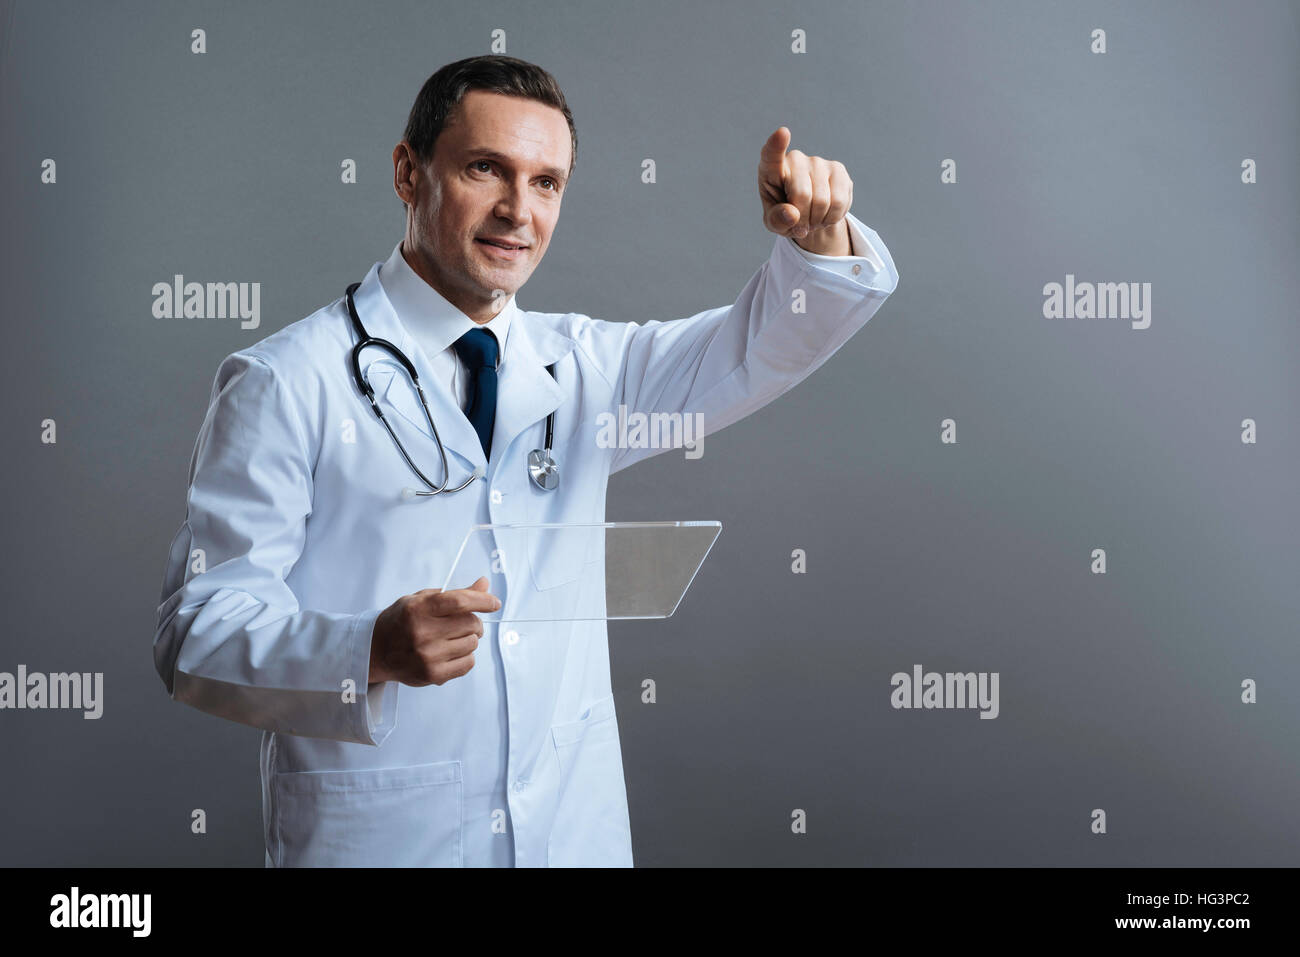 Delighted doctor pointing somewhere with his finger - Stock Image